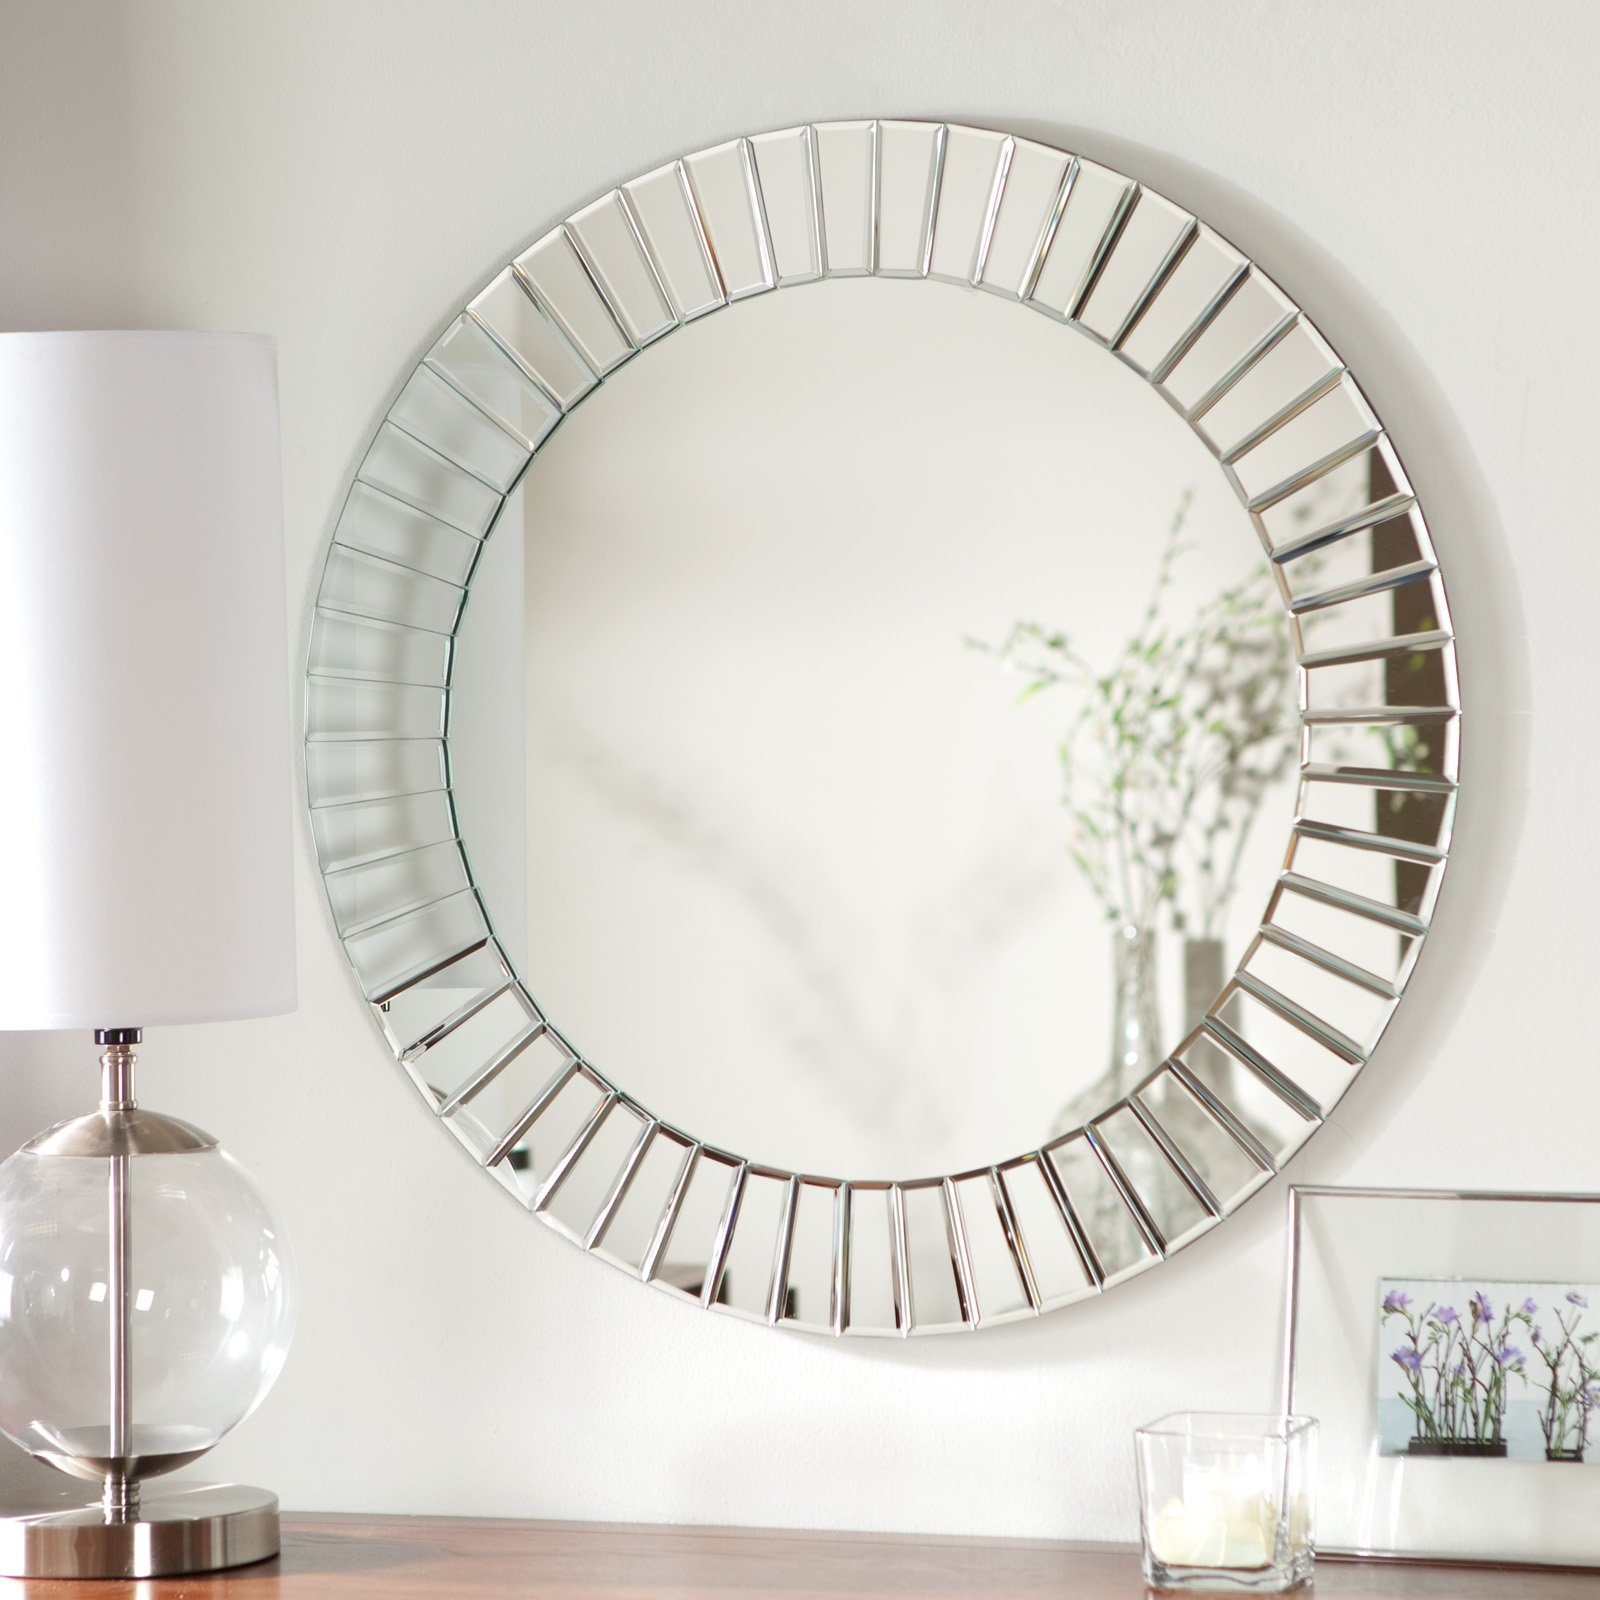 Decorative Mirrors For Bathroom With Regard To Funky Bathroom Mirror (Image 4 of 15)